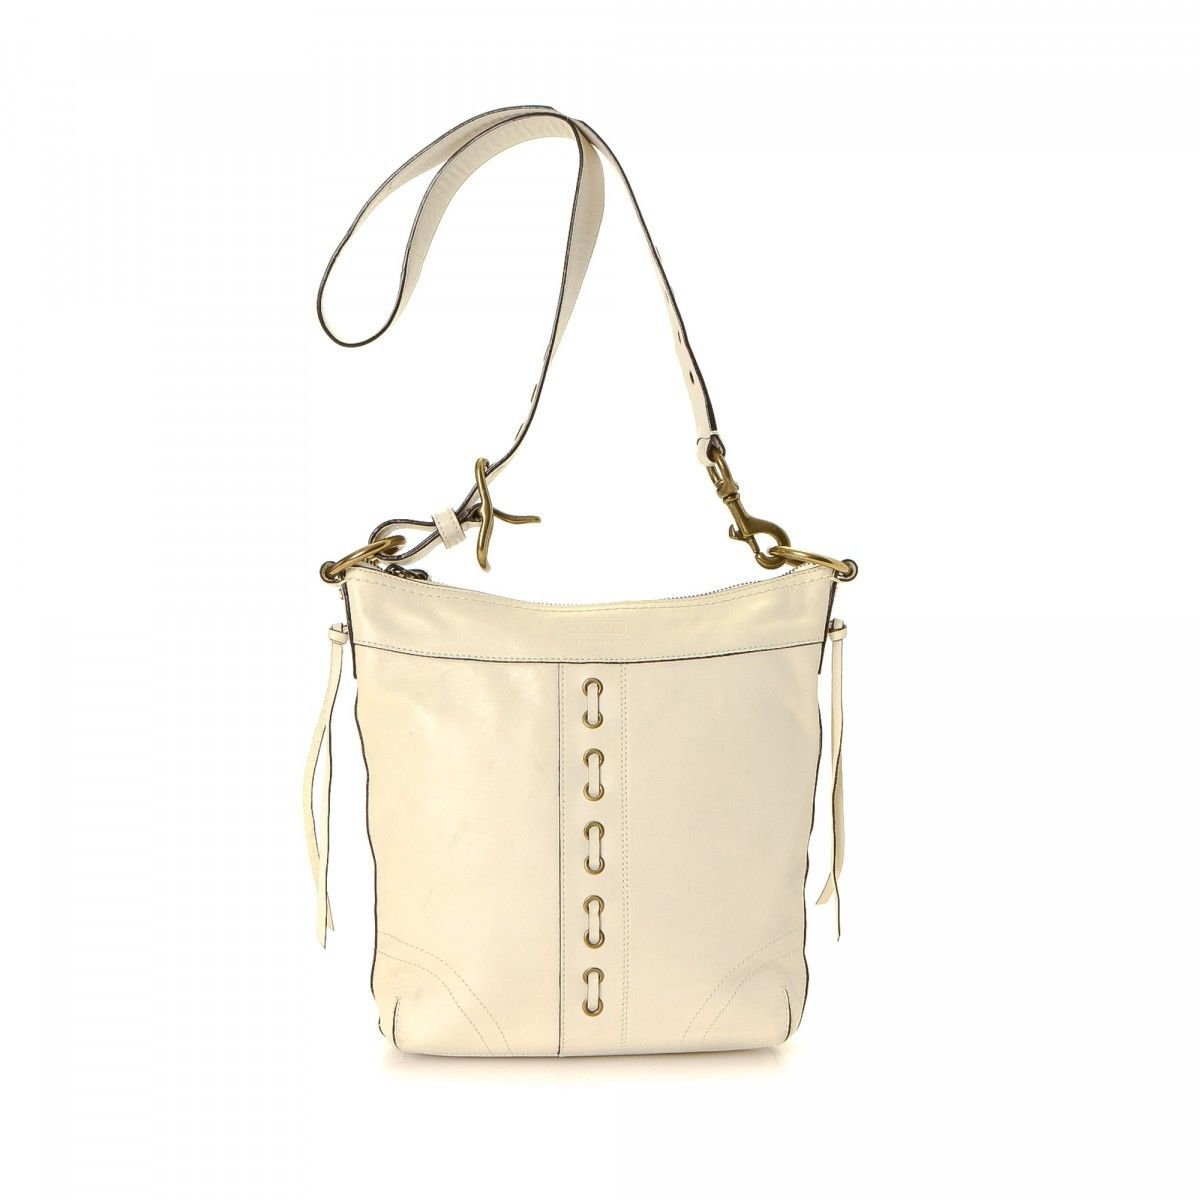 Pre-owned - Leather crossbody bag Coach Cheap Fashionable 5IHt1218v